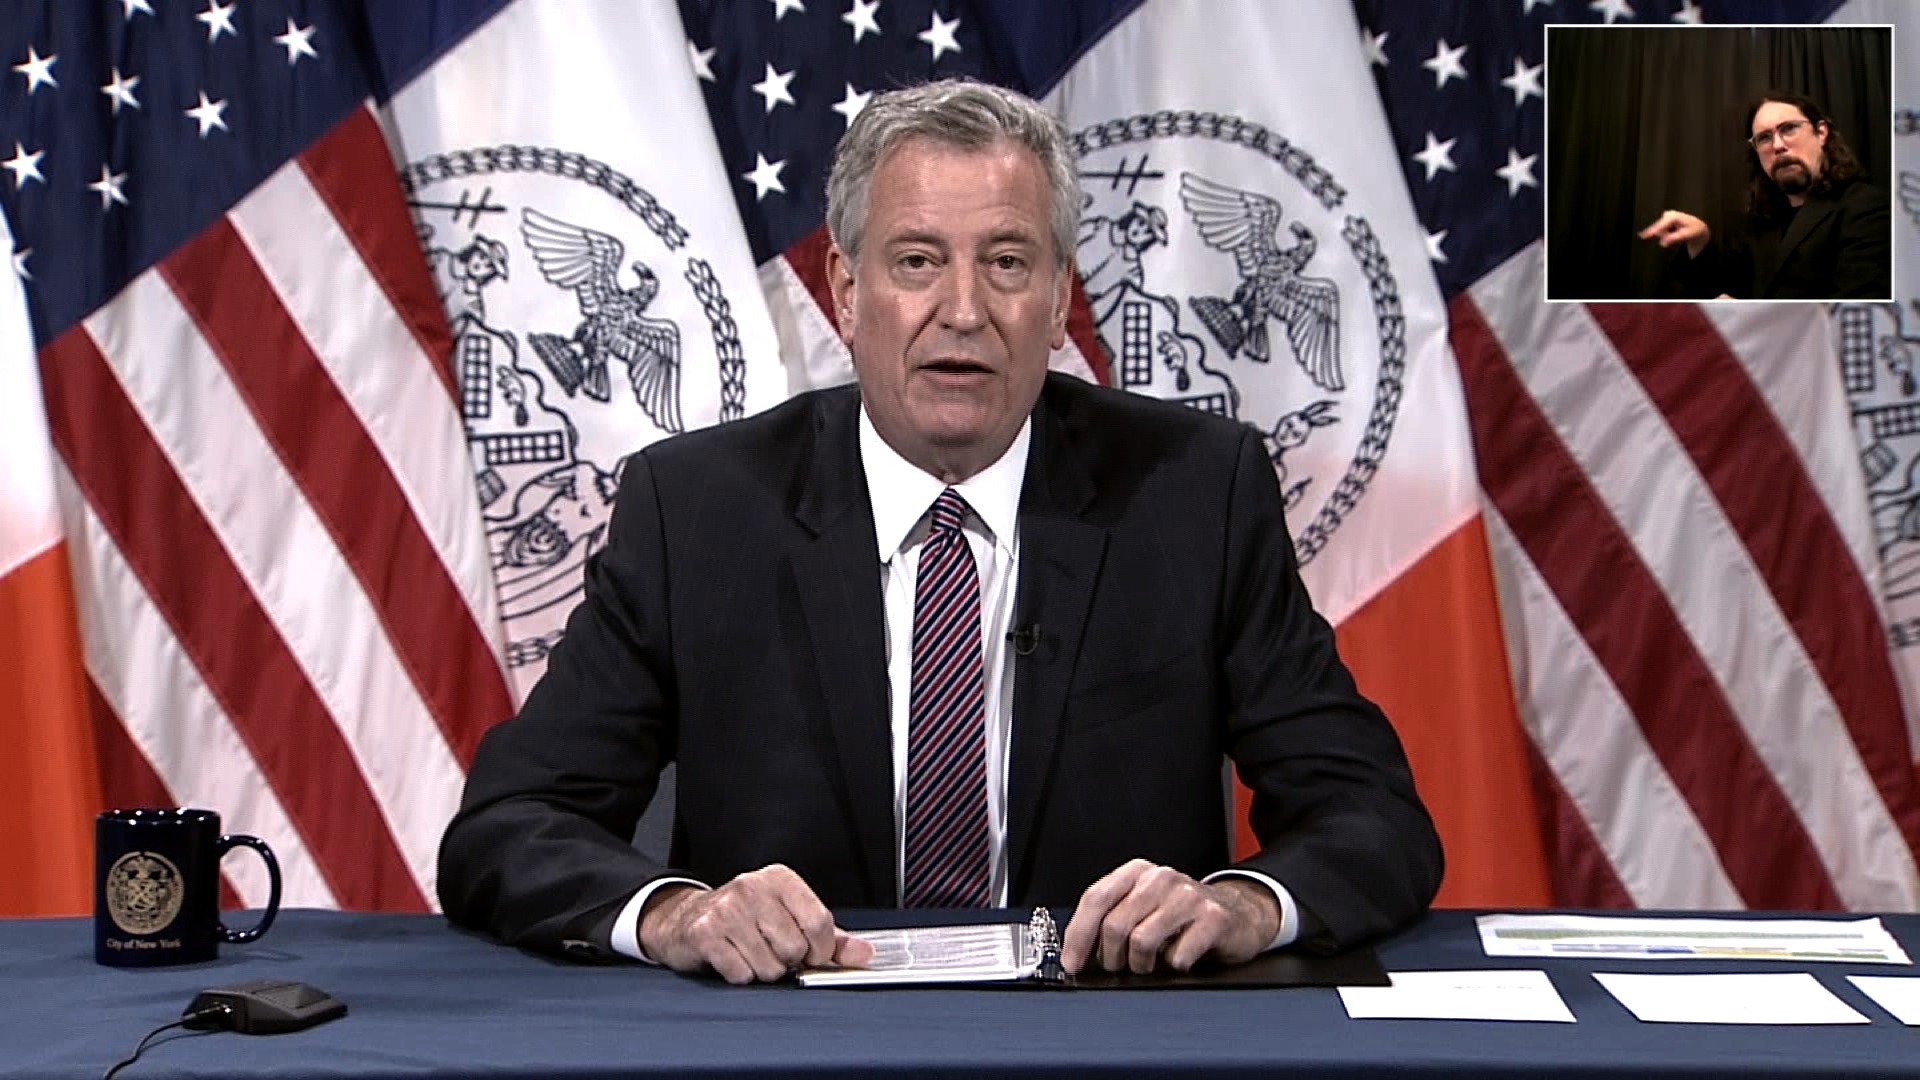 New York City Mayor Bill de Blasio speaks during a press conference in New York on June 11.